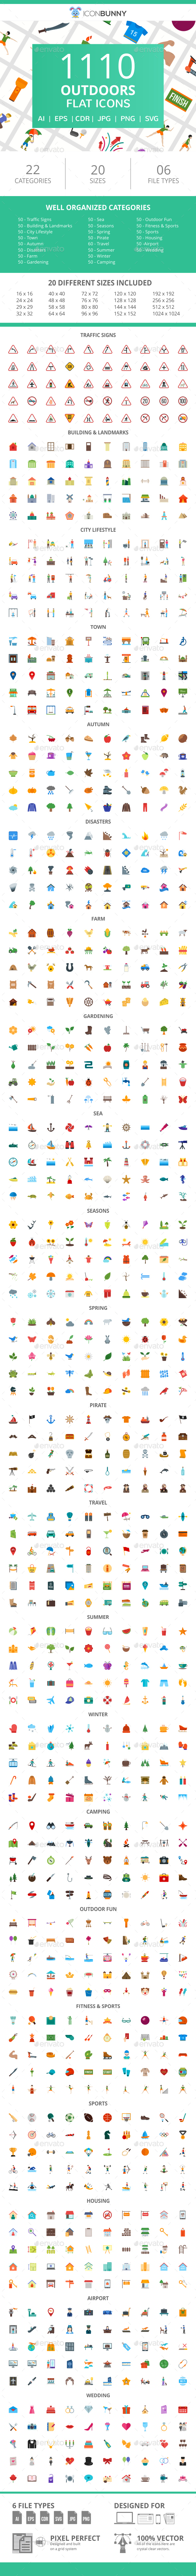 1396 Professions & Services Flat Icons - Icons